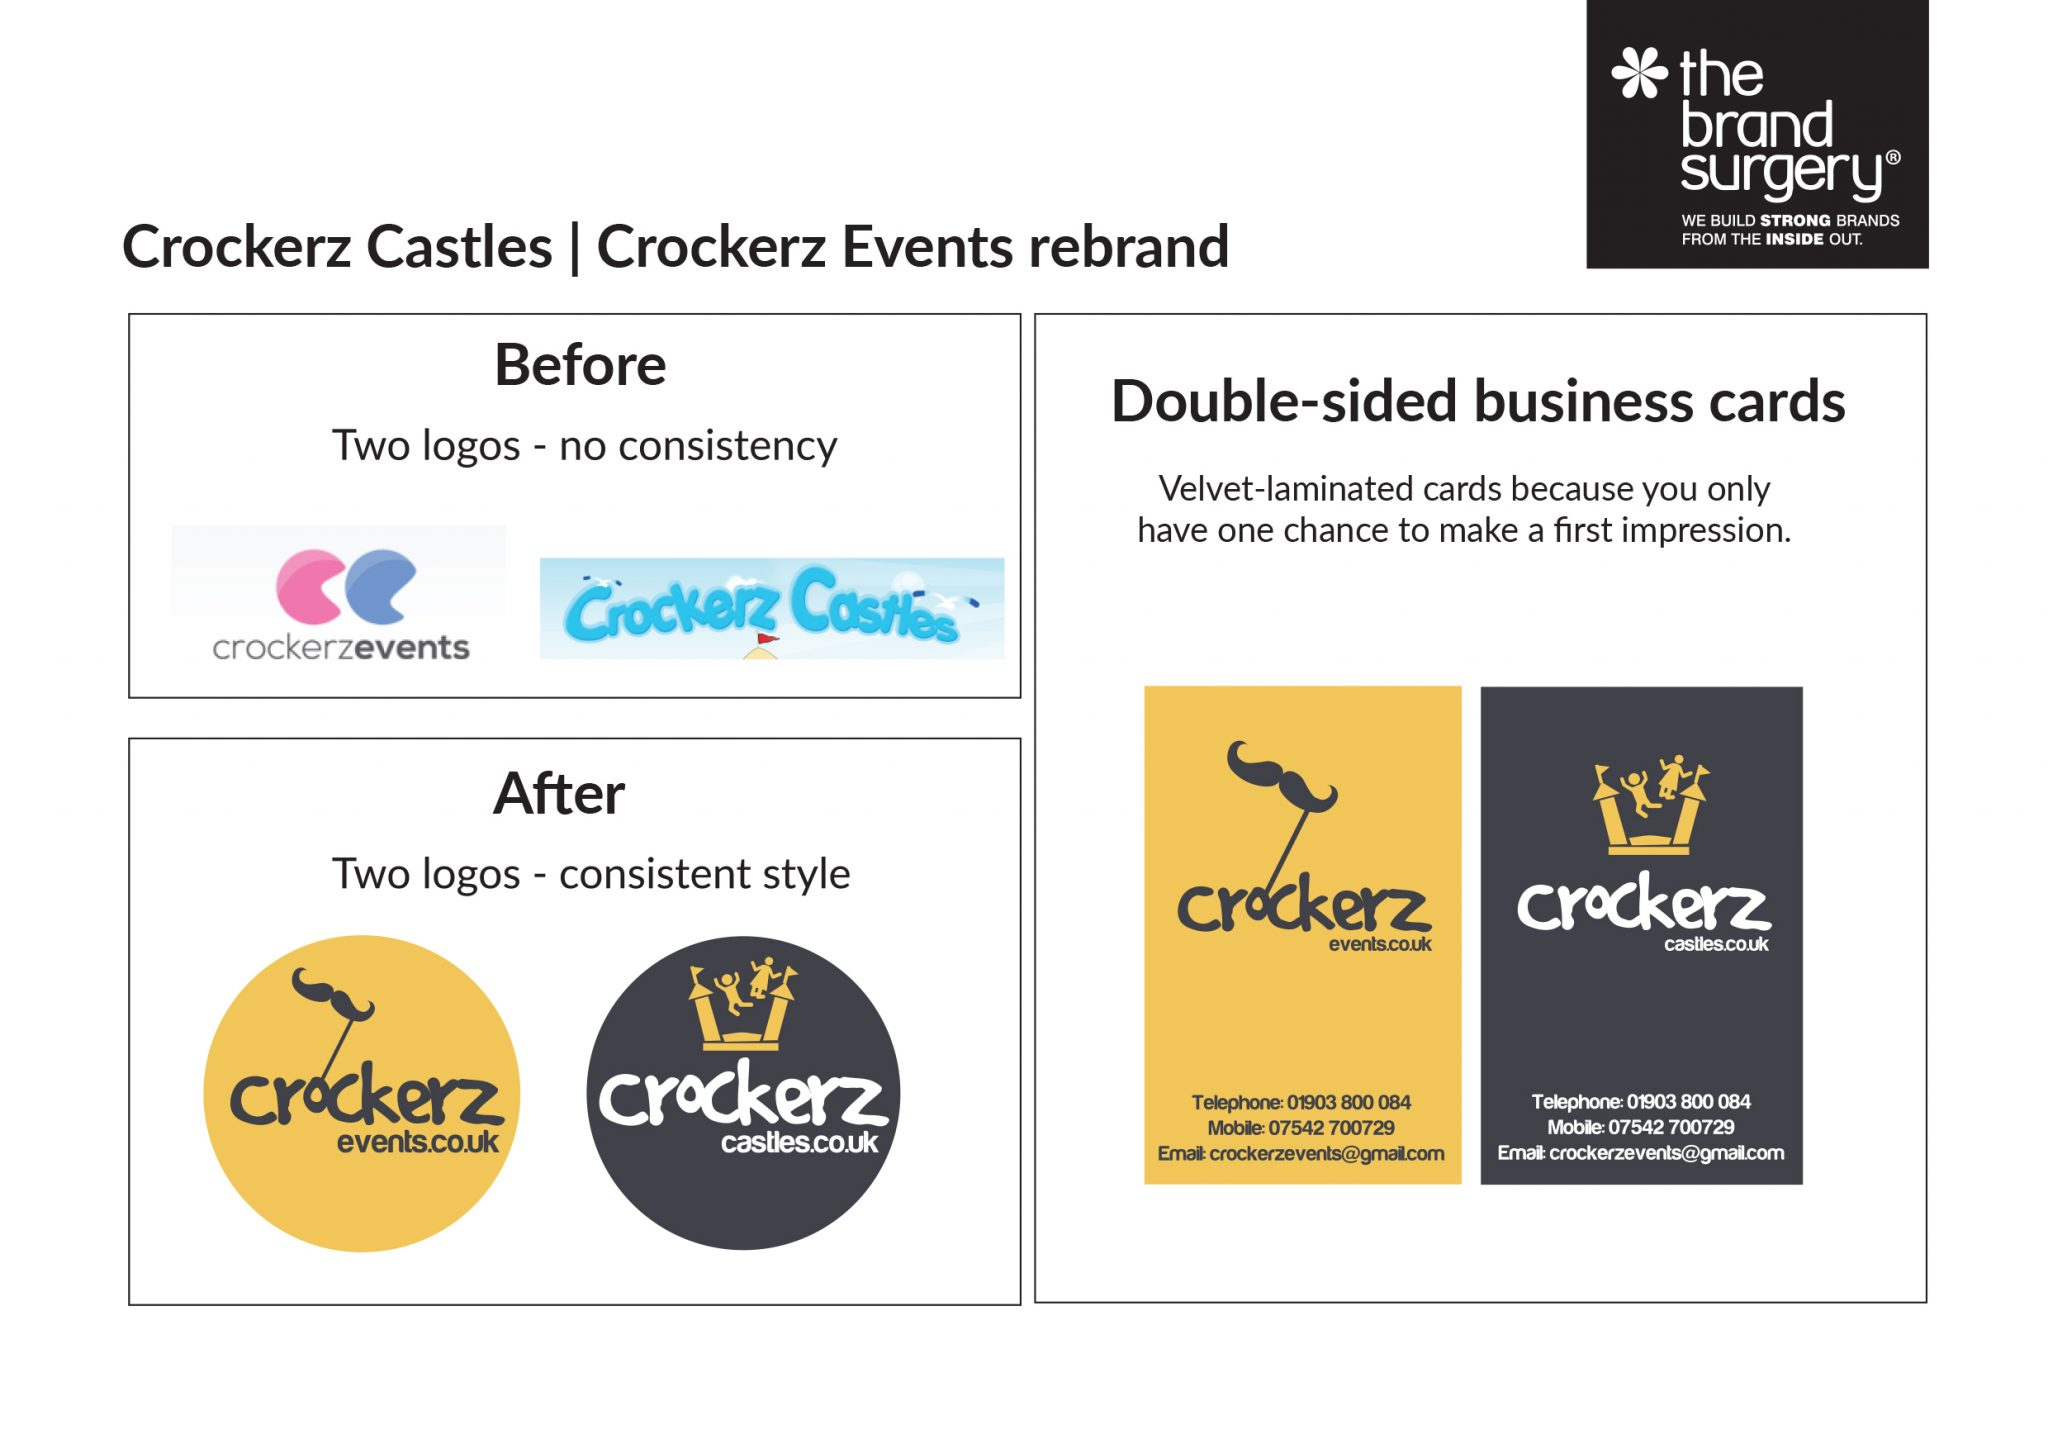 Logo and stationery design as part of rebrand for Crockerz Events and Crockerz Castles